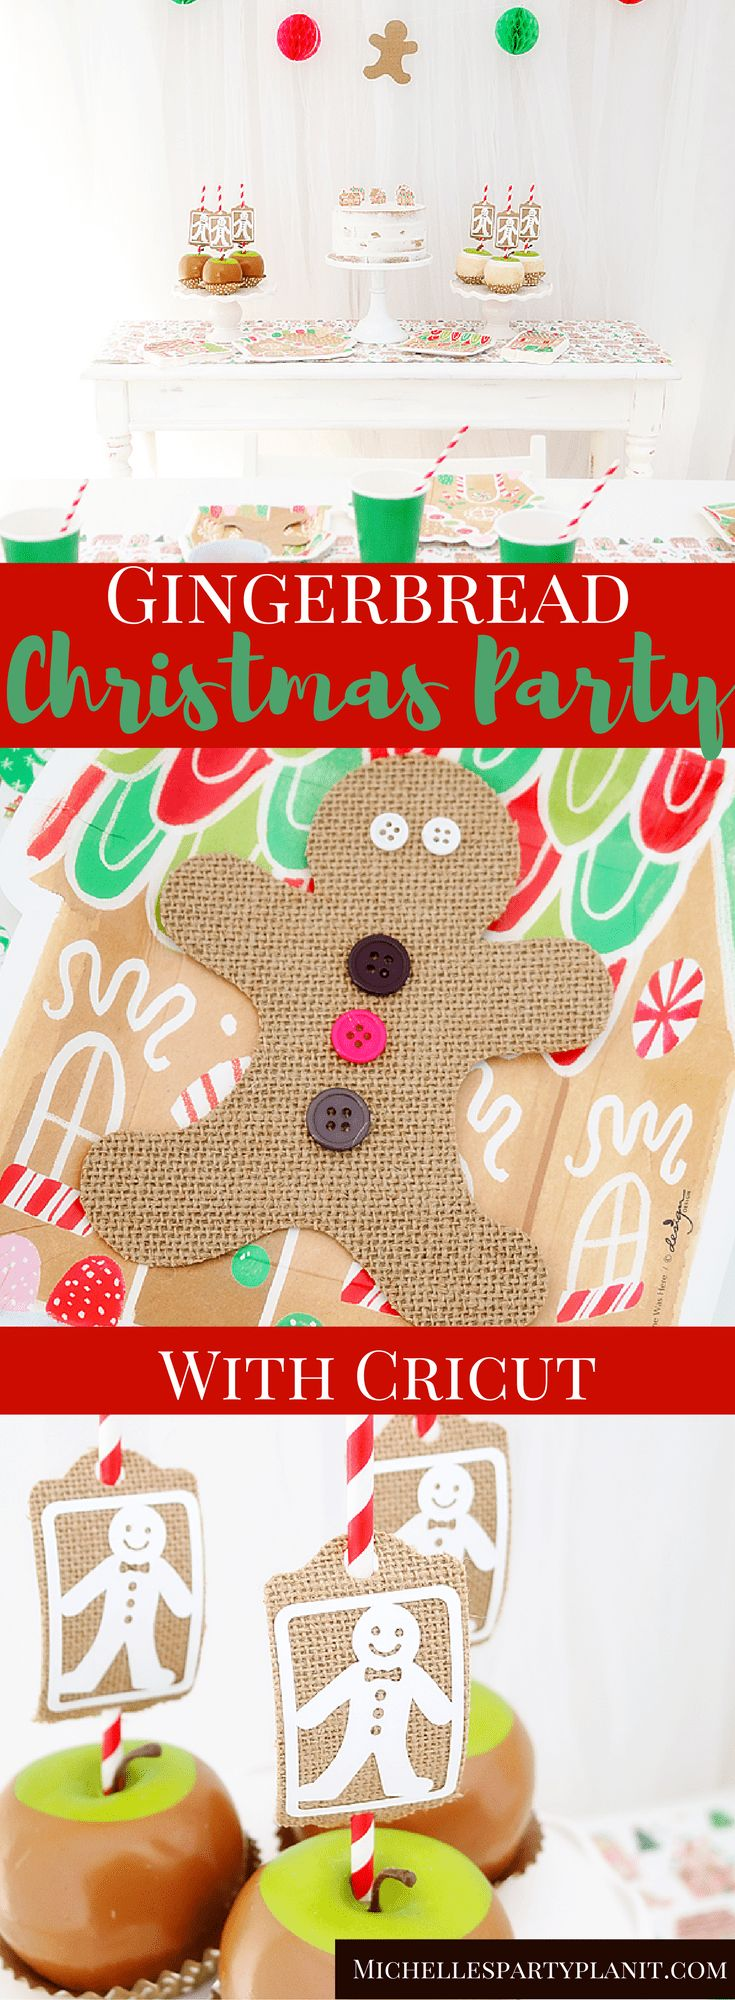 47 best Cricut Maker images on Pinterest | Artists, Card stock and ...